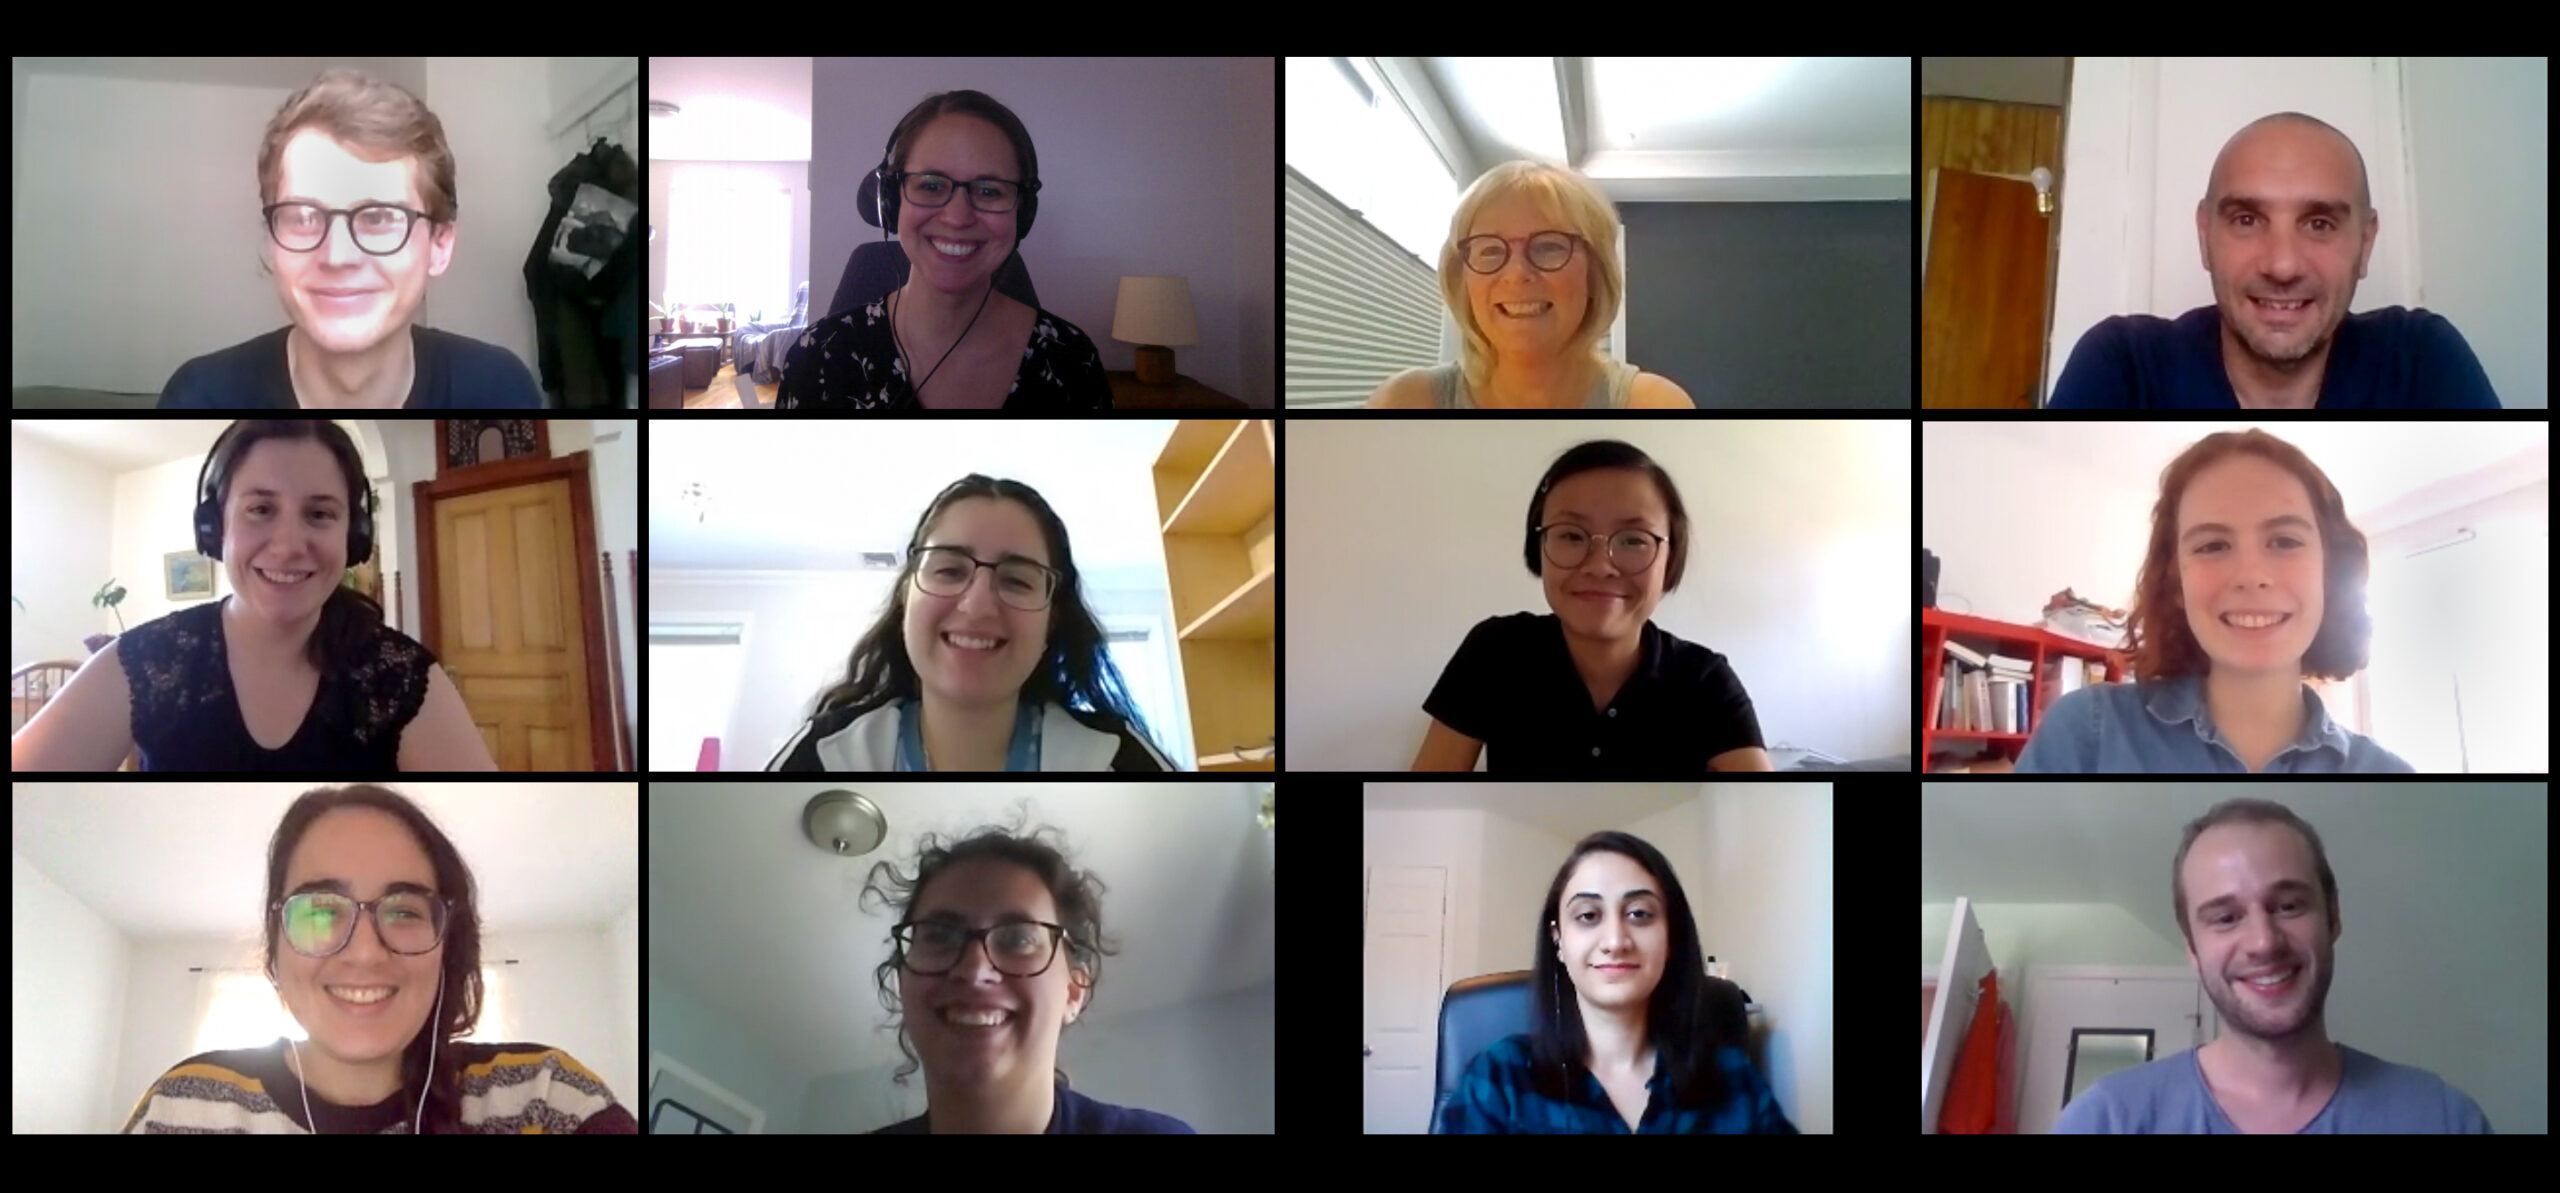 The GeoSDH team on a Zoom meeting in June, 2020.